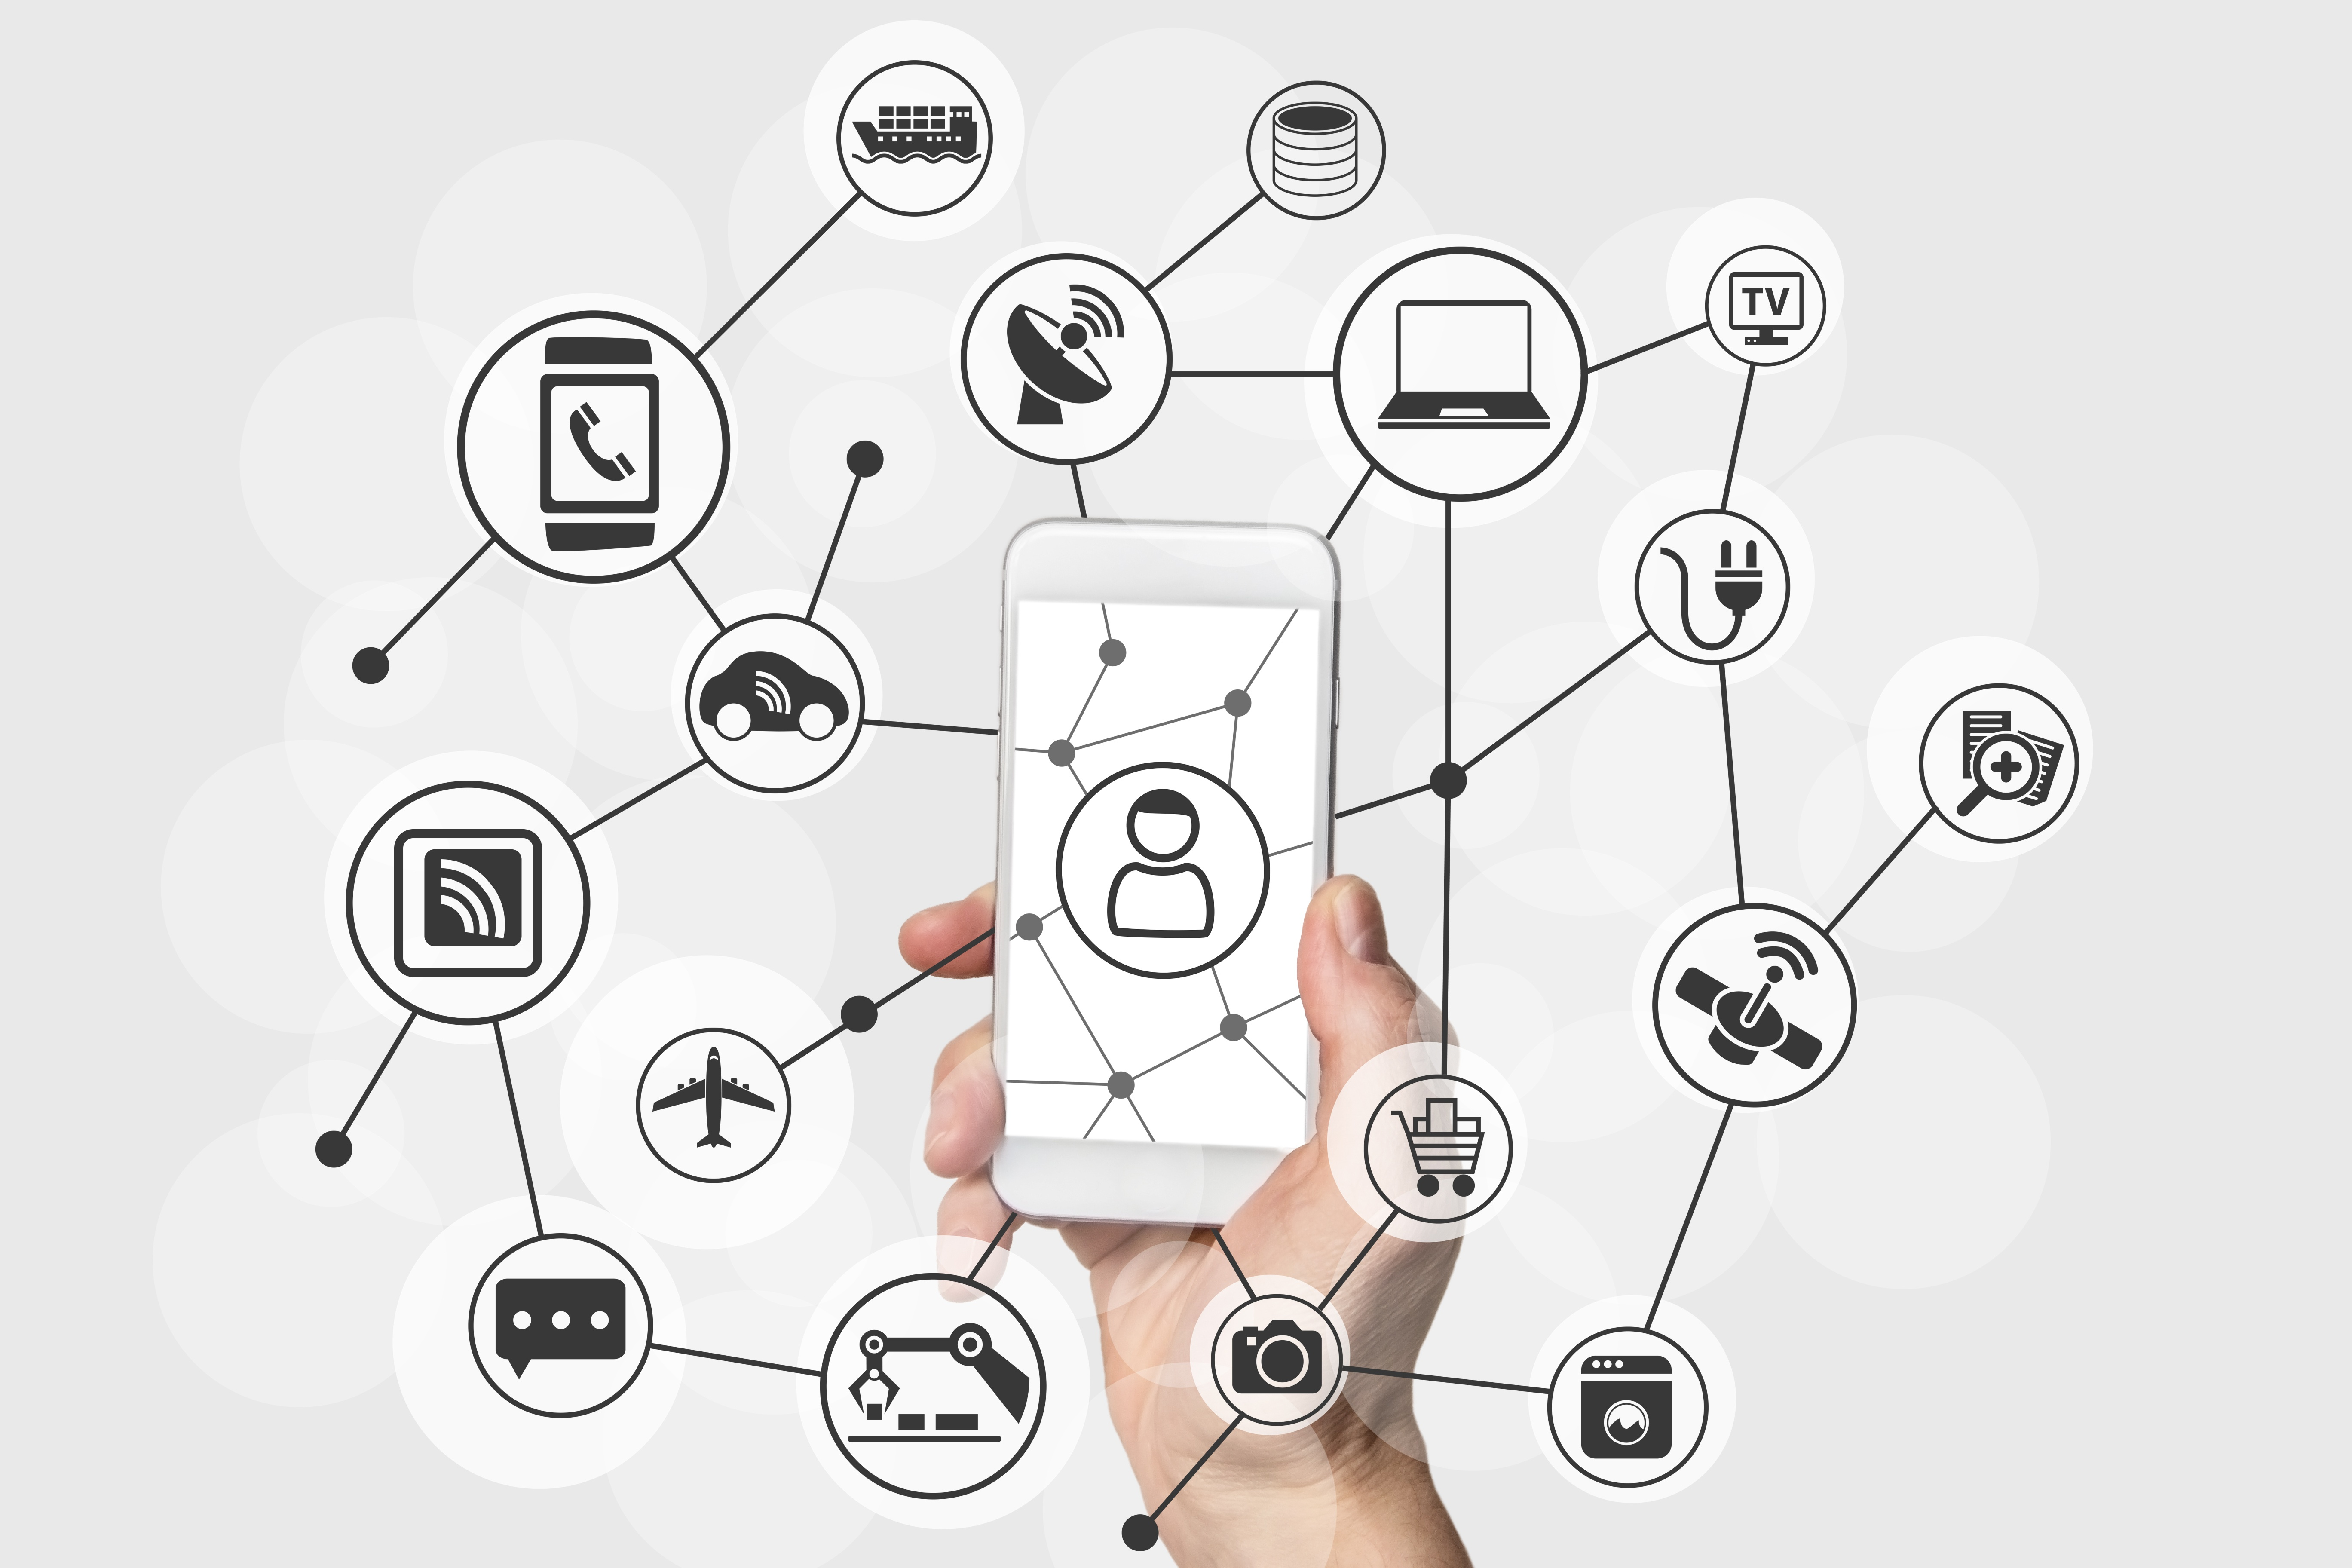 Mobile phone and connected applications inlcund chatbots